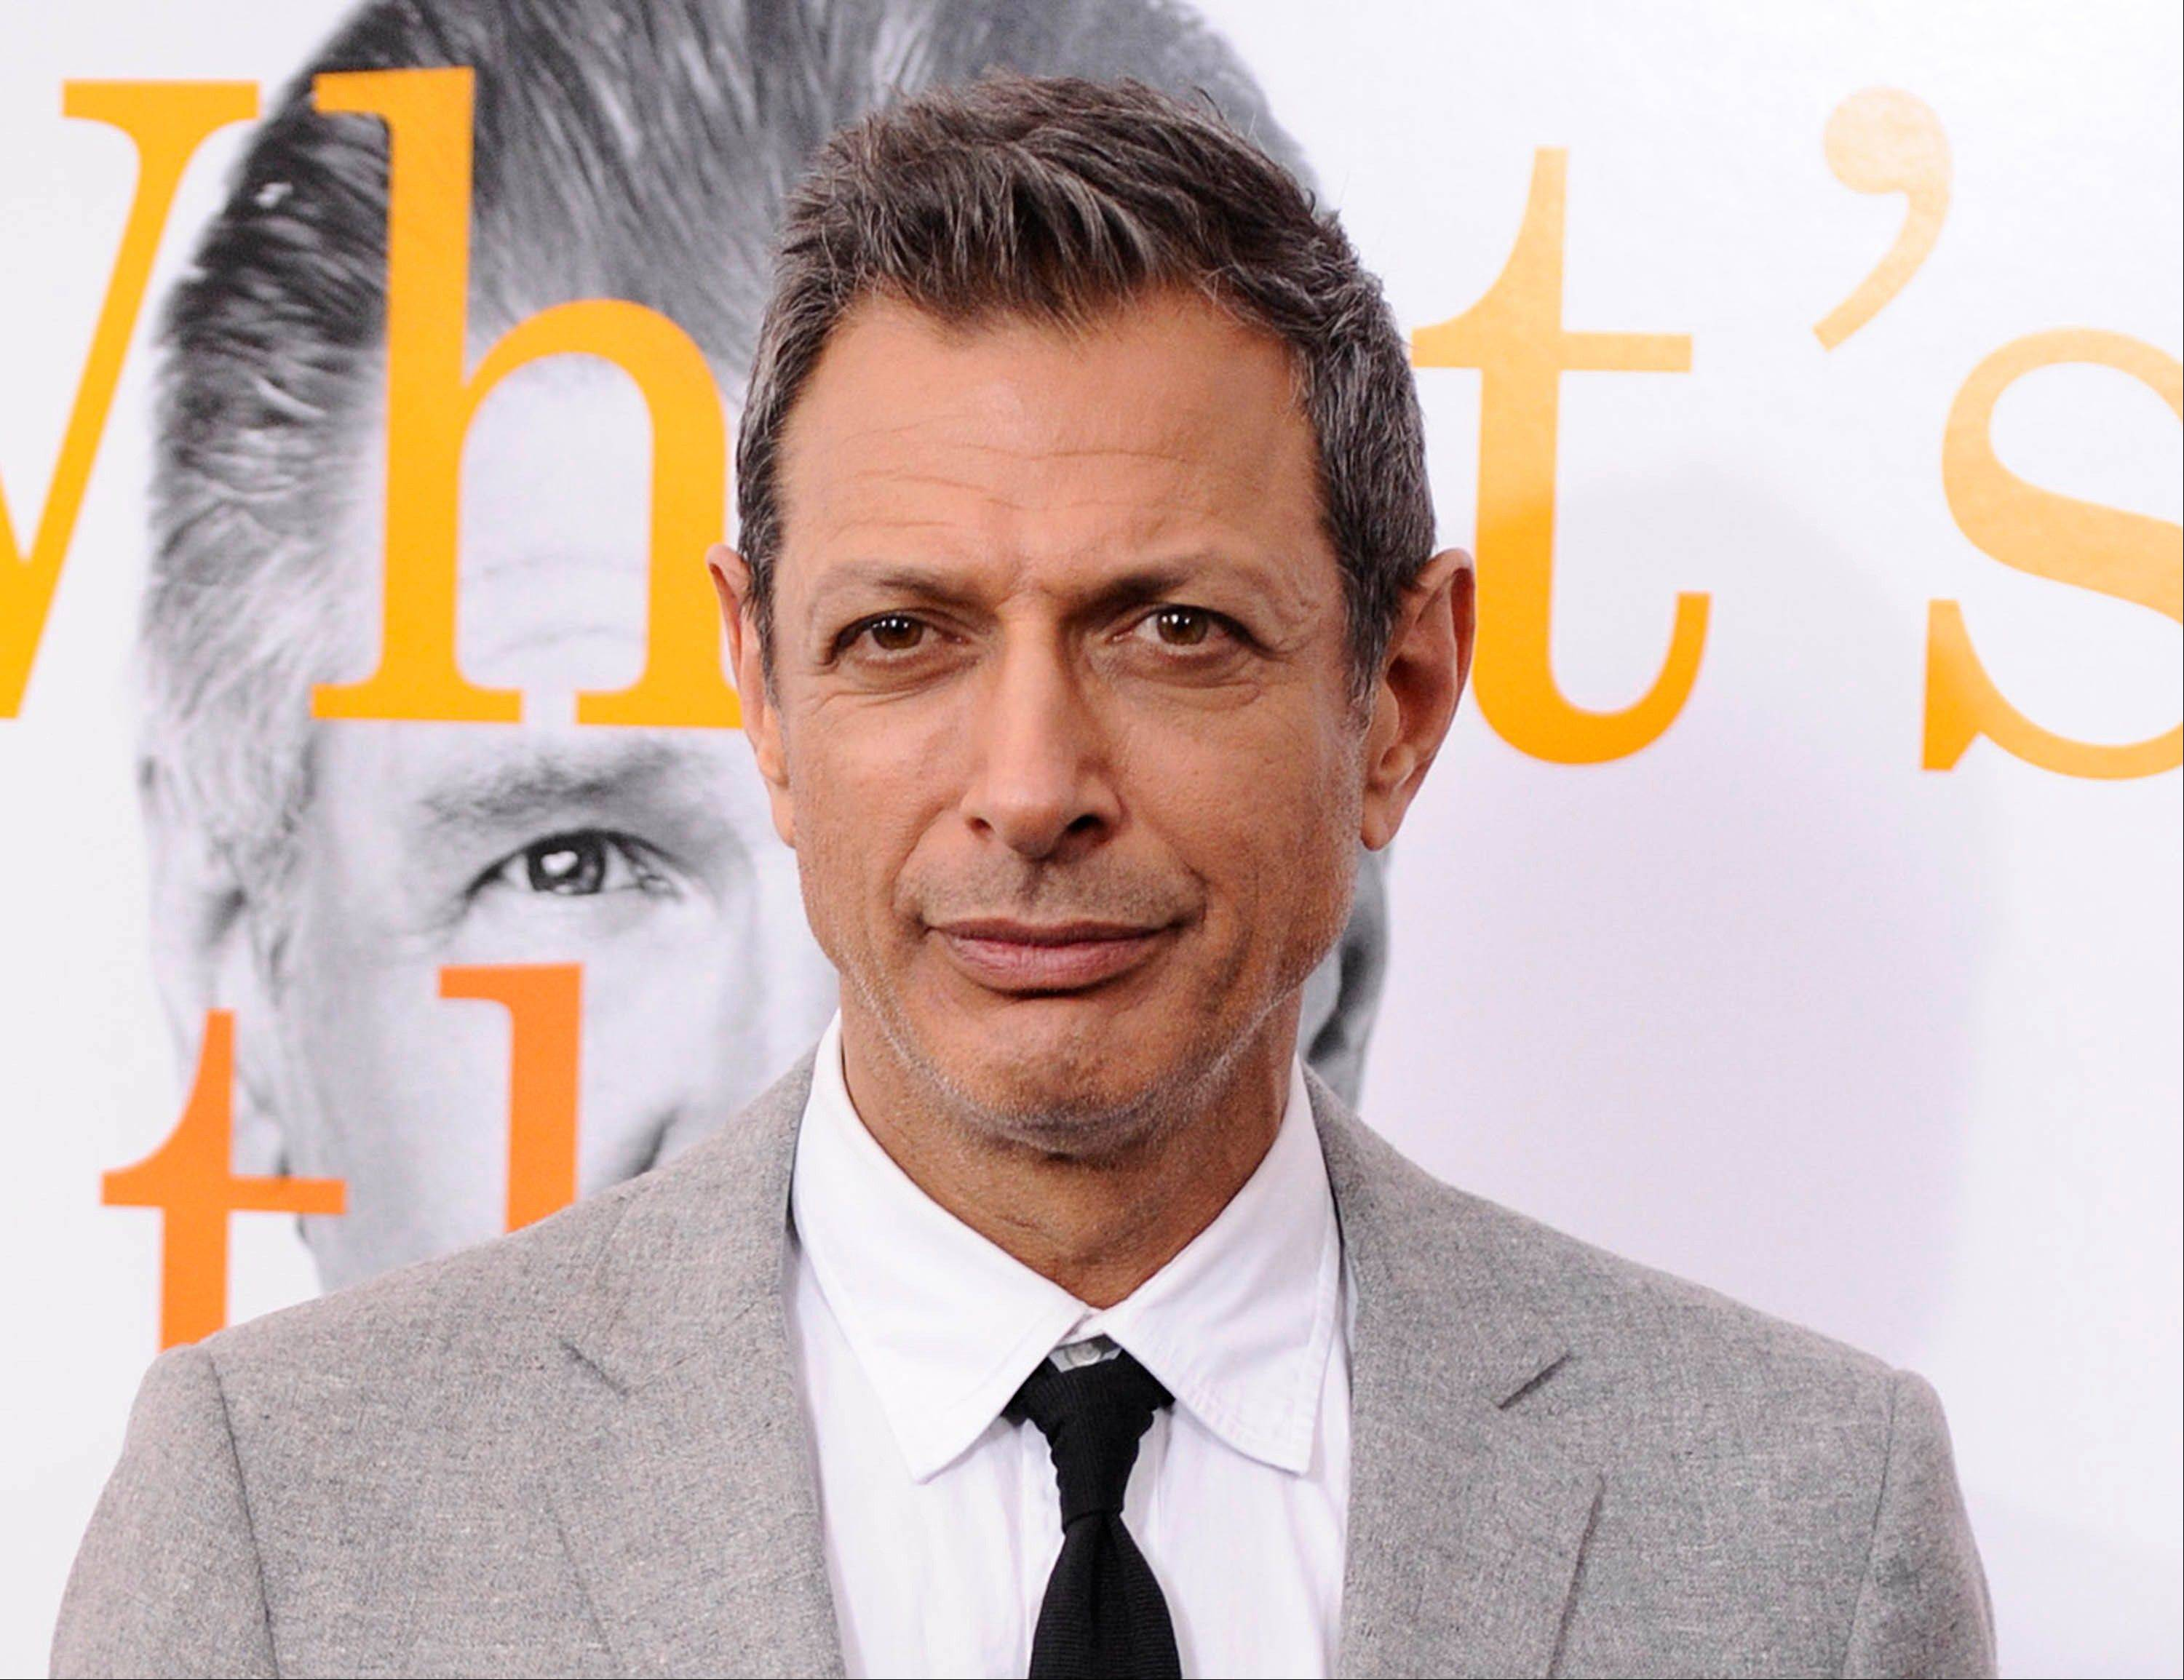 A judge on Tuesday granted Jeff Goldblum a three-year restraining order against Linda Ransom, who the actor says has been harassing him for a decade and came to his house repeatedly last month.